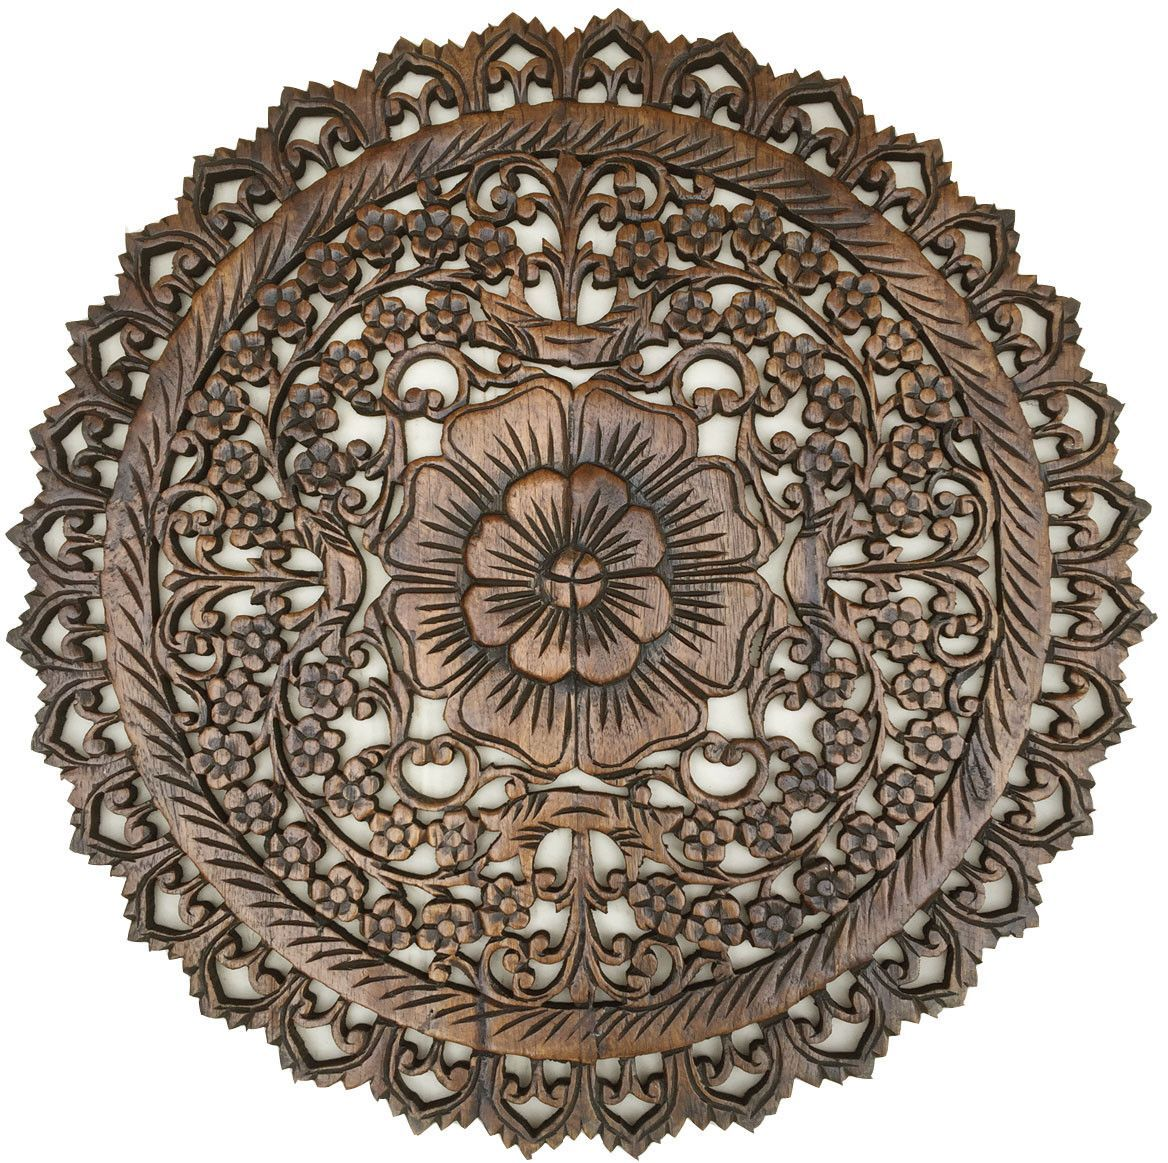 Decorative Wall Plaques oriental round carved wood wall decor. decorative floral wall